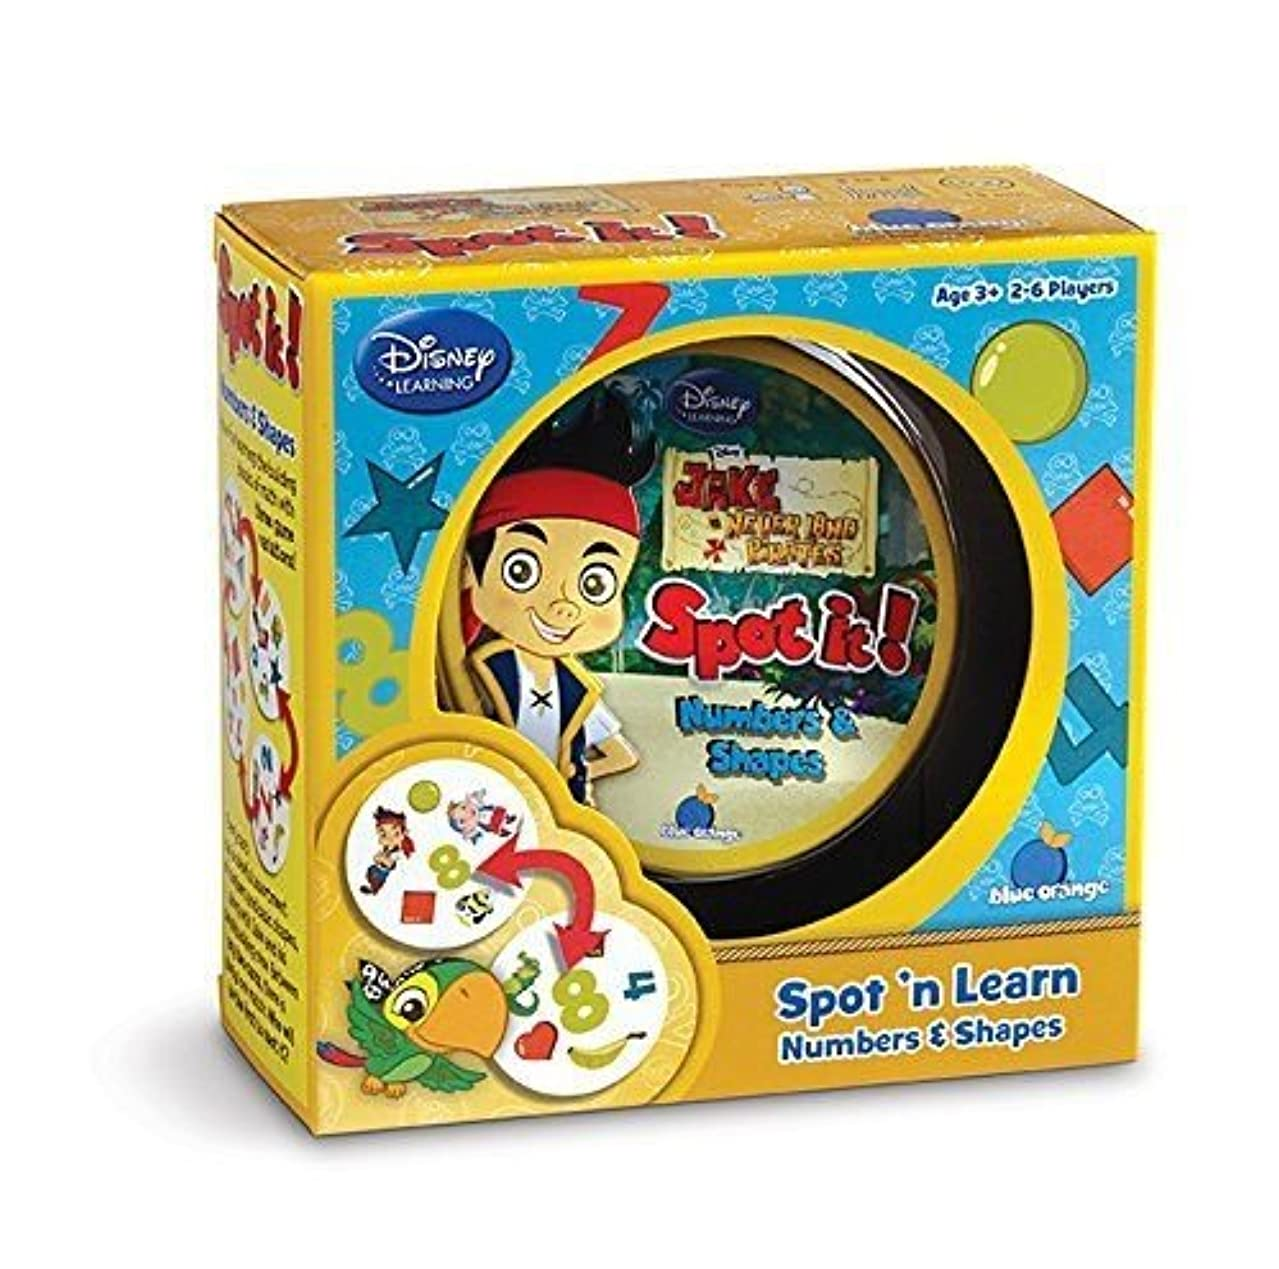 Spot it! Jake and the Never Land Pirates- Numbers and Shapes , New,pin ^G#fbhre-h4 8rdsf-tg1318333